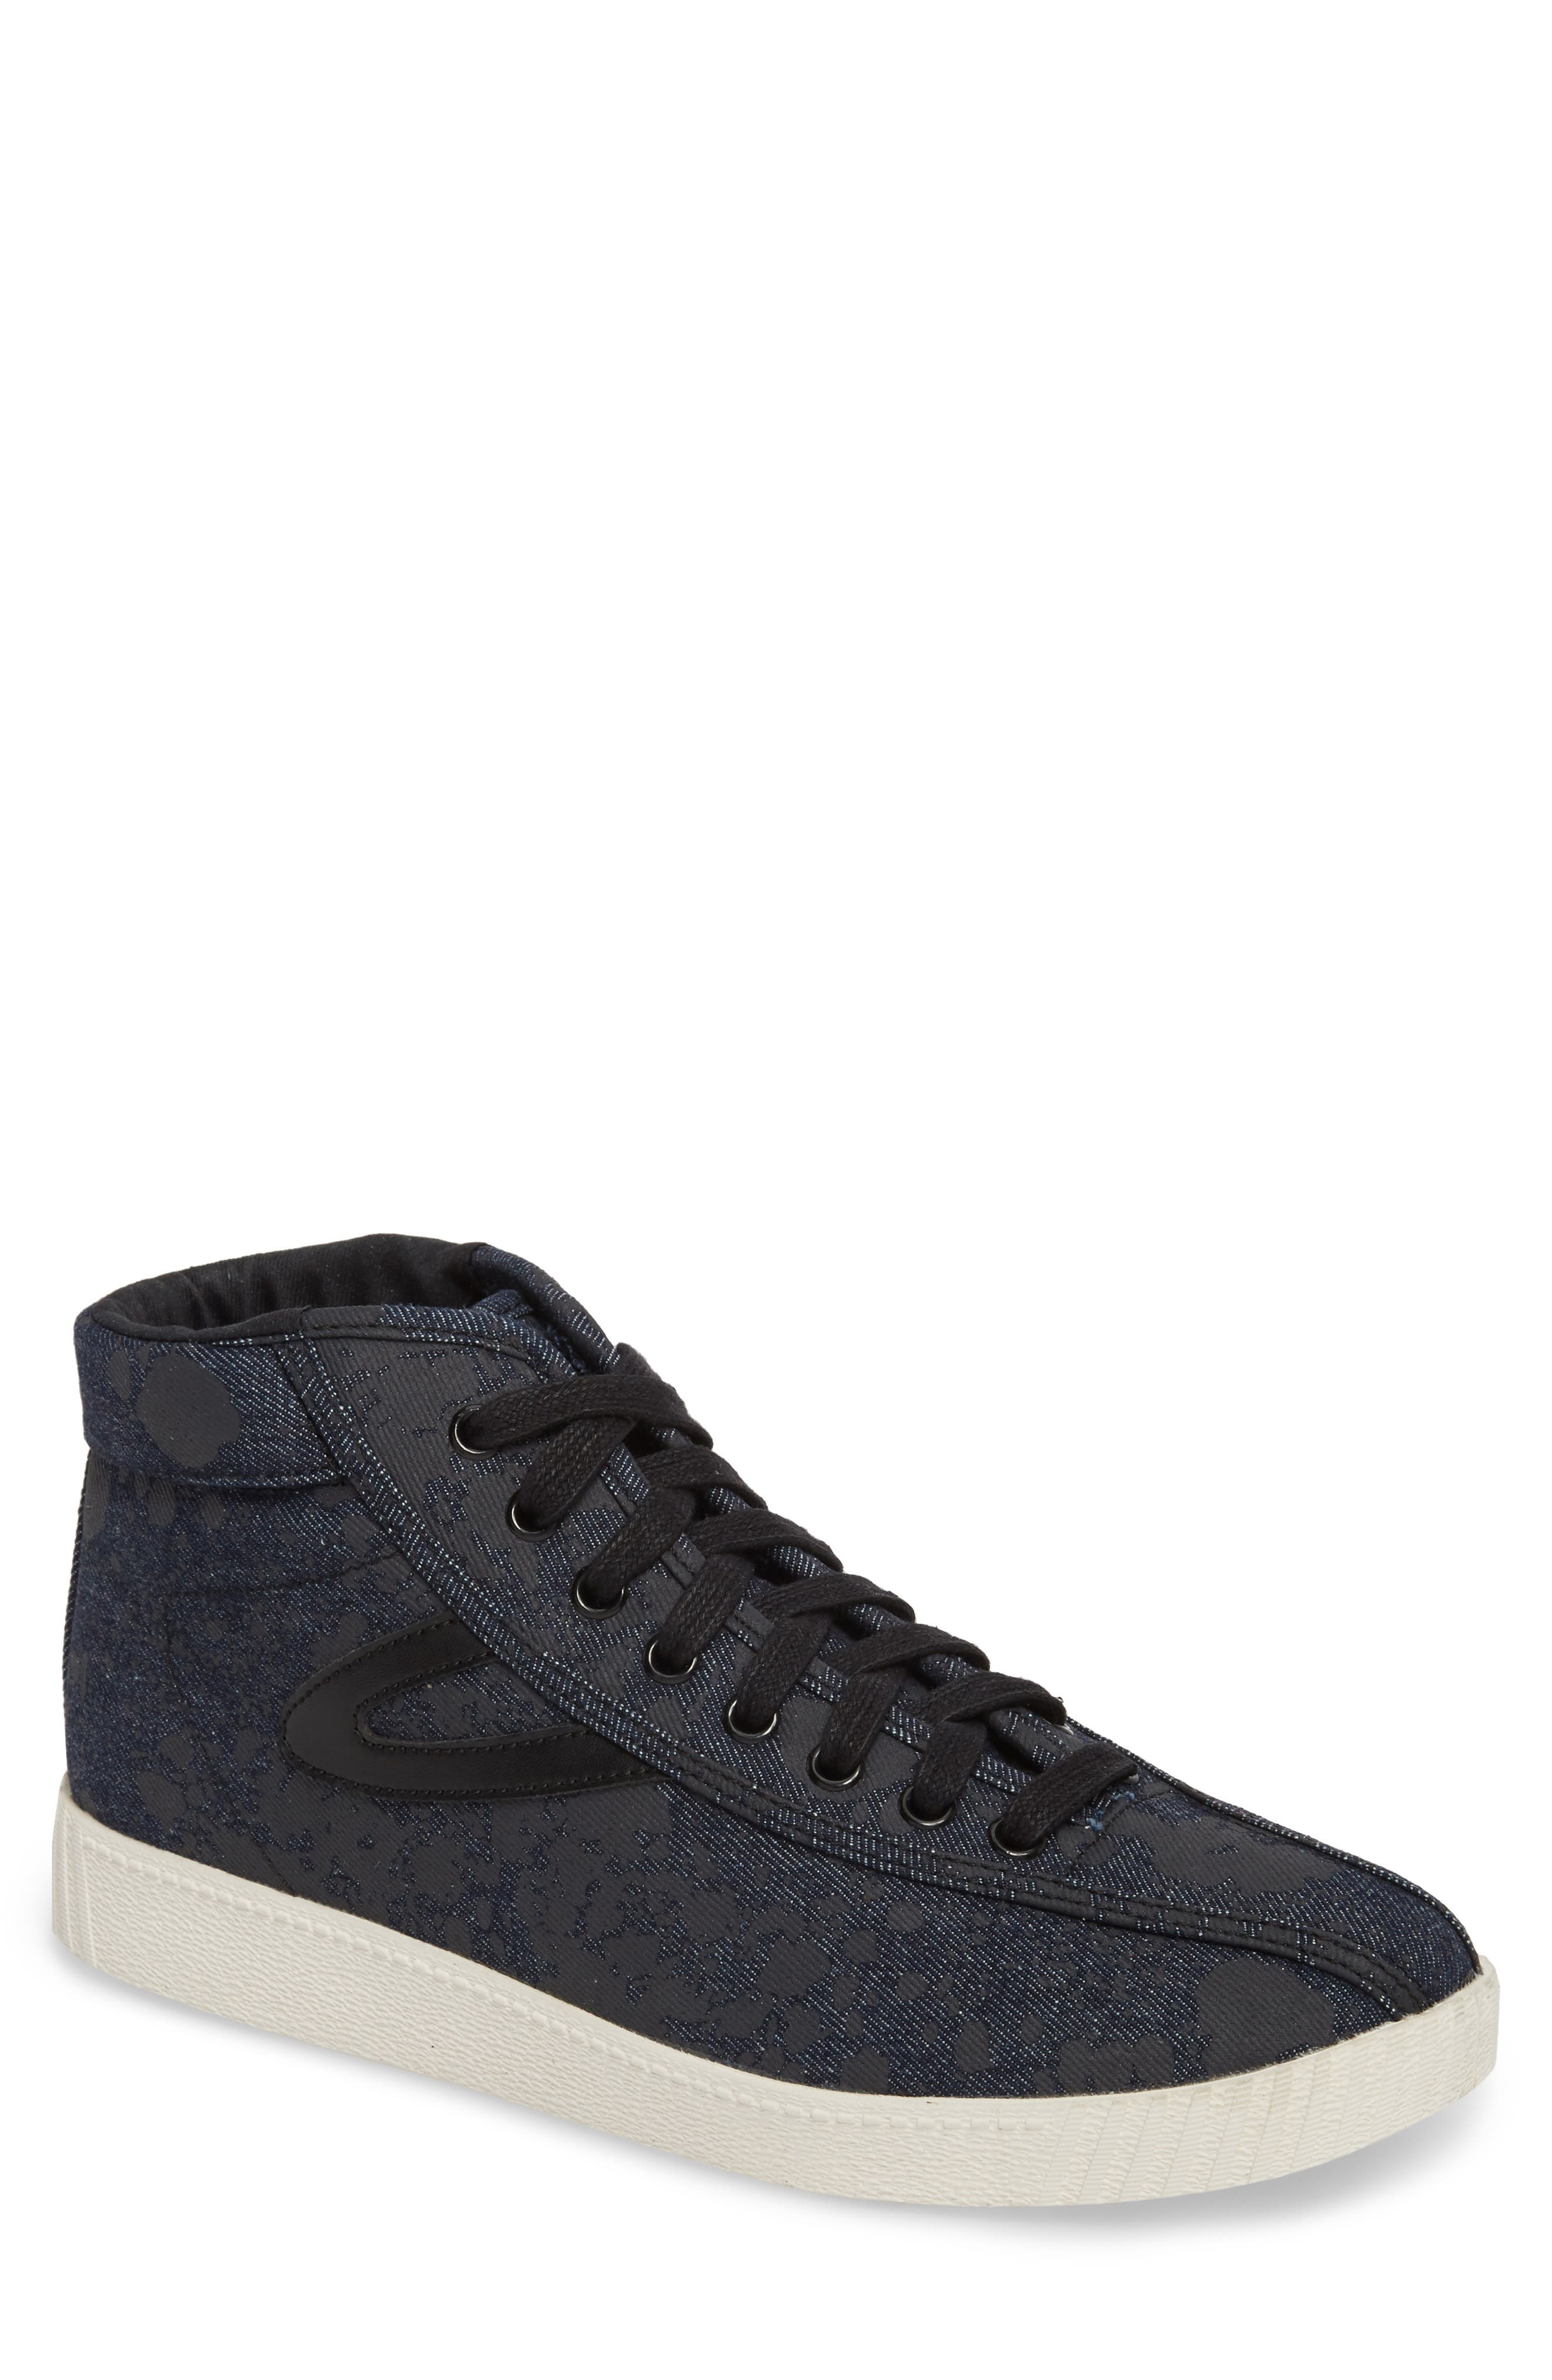 Nylite High Top Sneaker,                             Main thumbnail 1, color,                             001